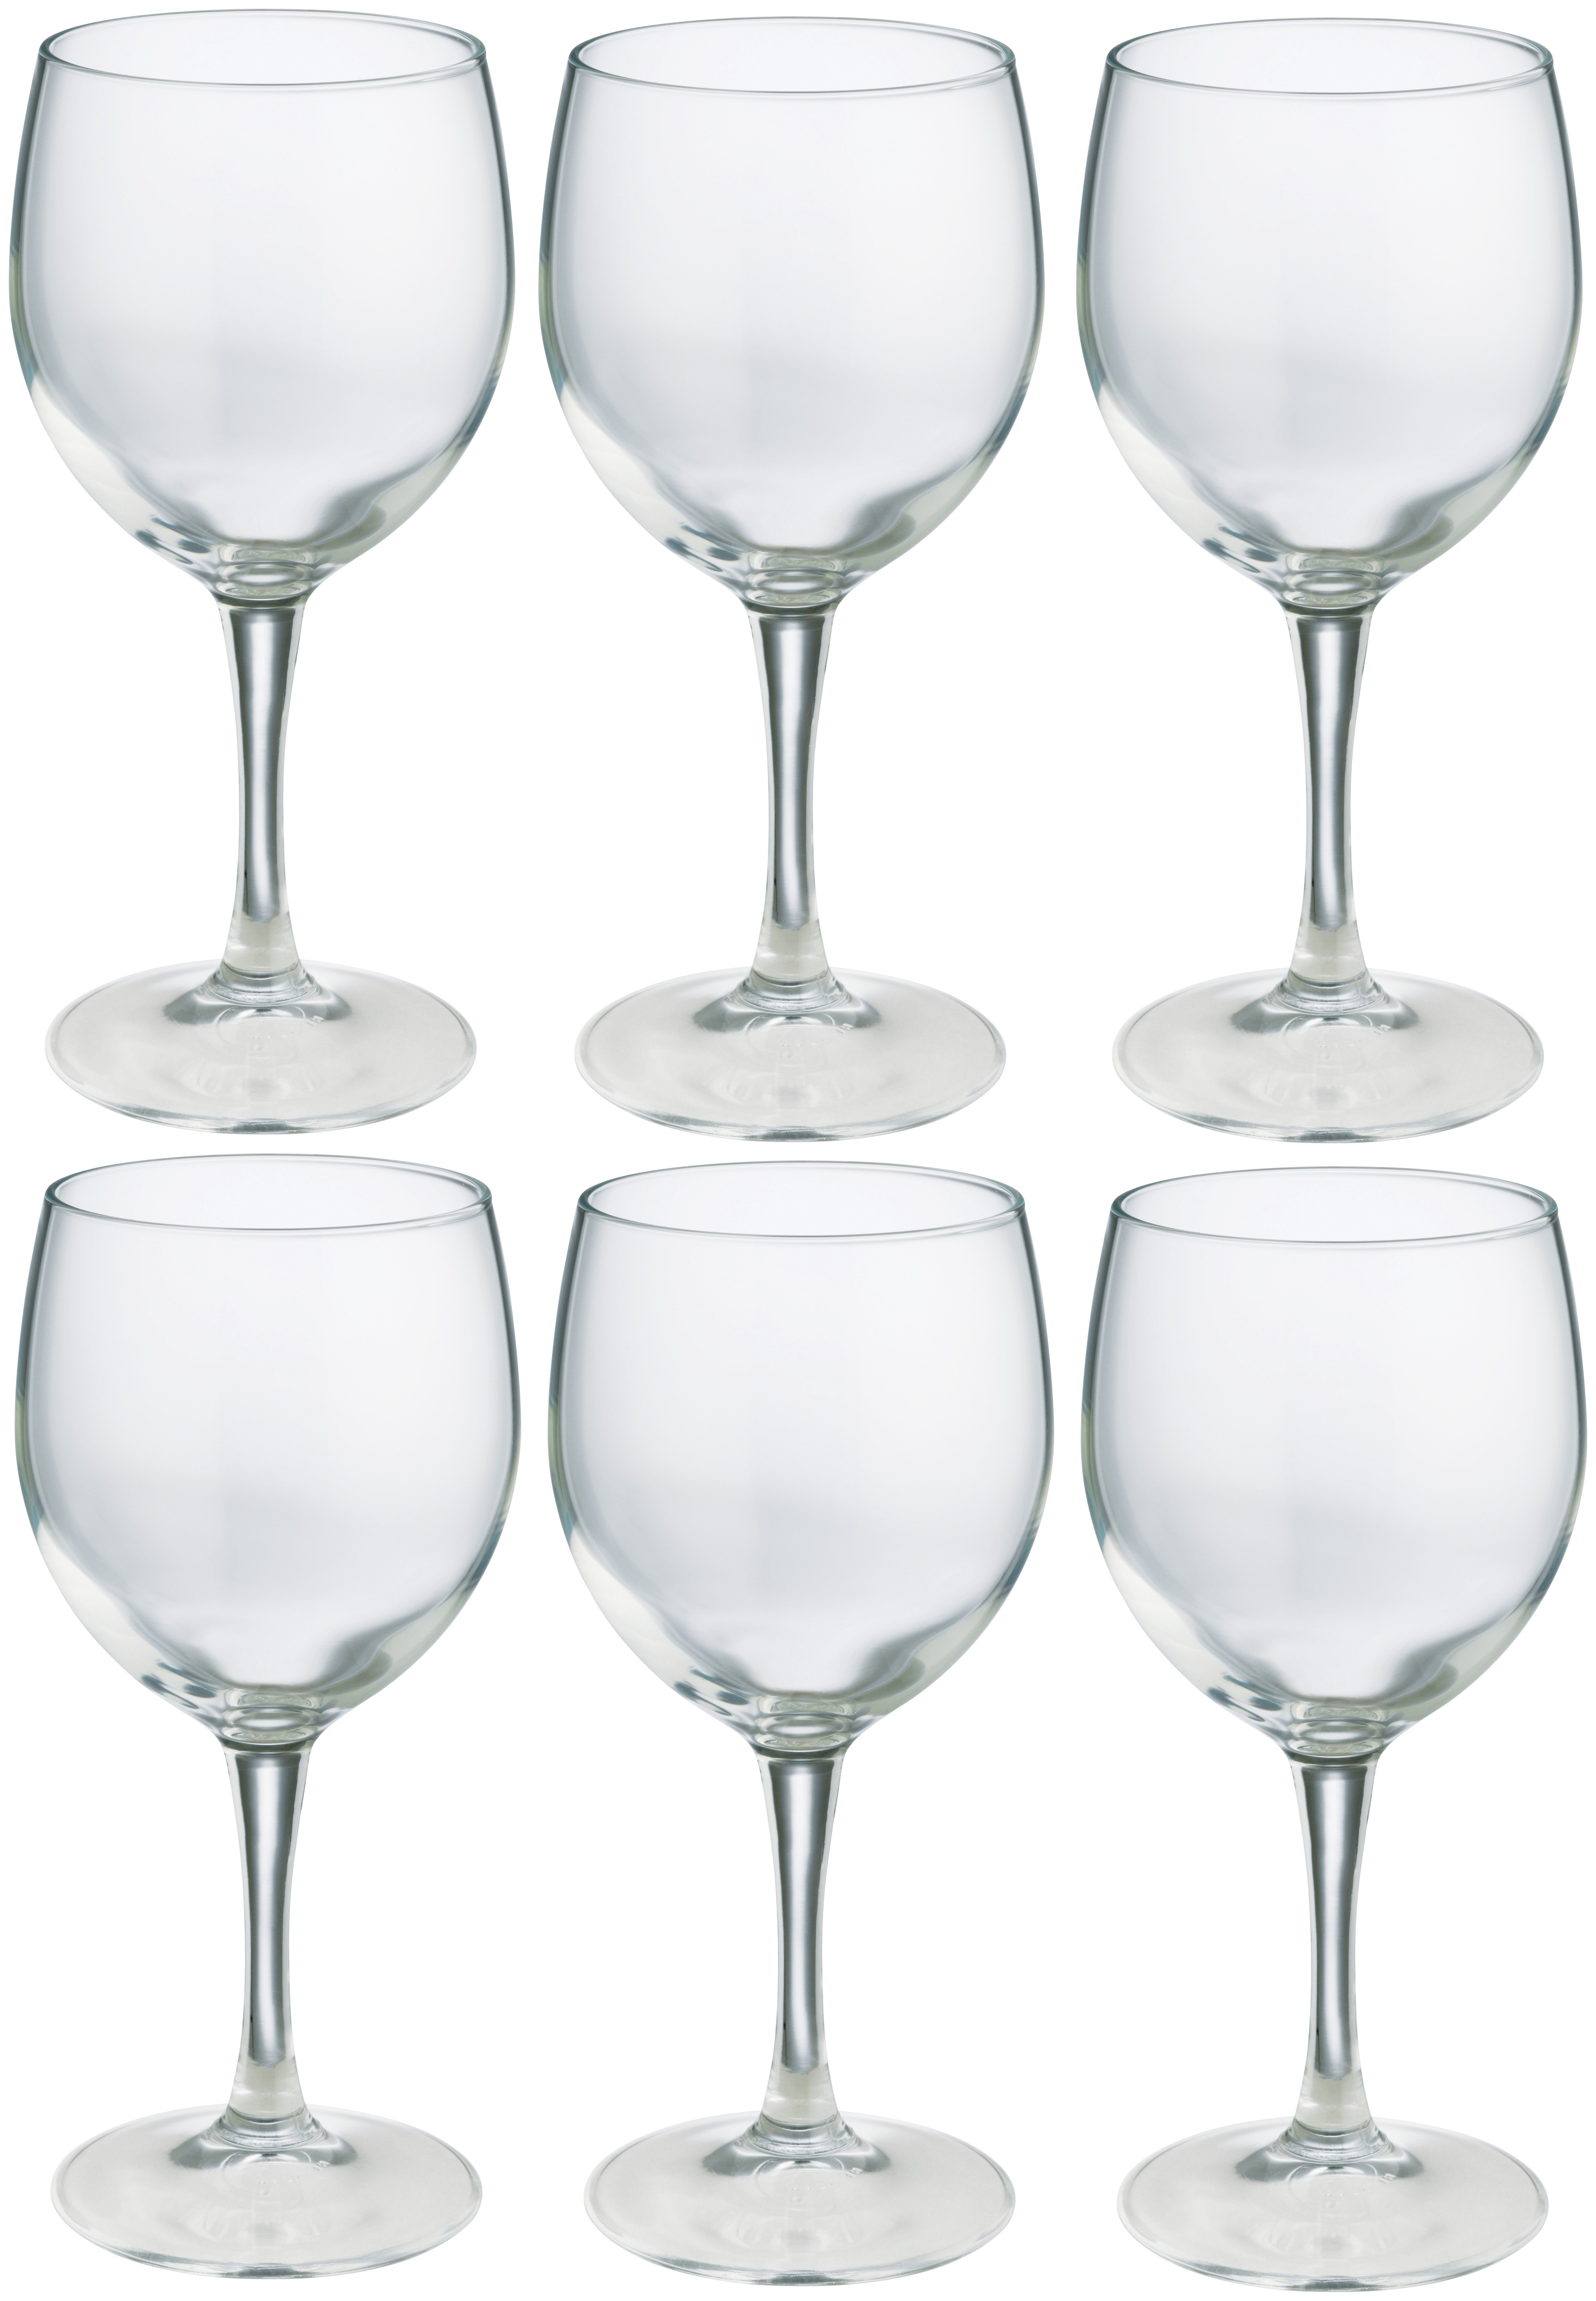 habitat joy set of 6 red wine glasses review. Black Bedroom Furniture Sets. Home Design Ideas